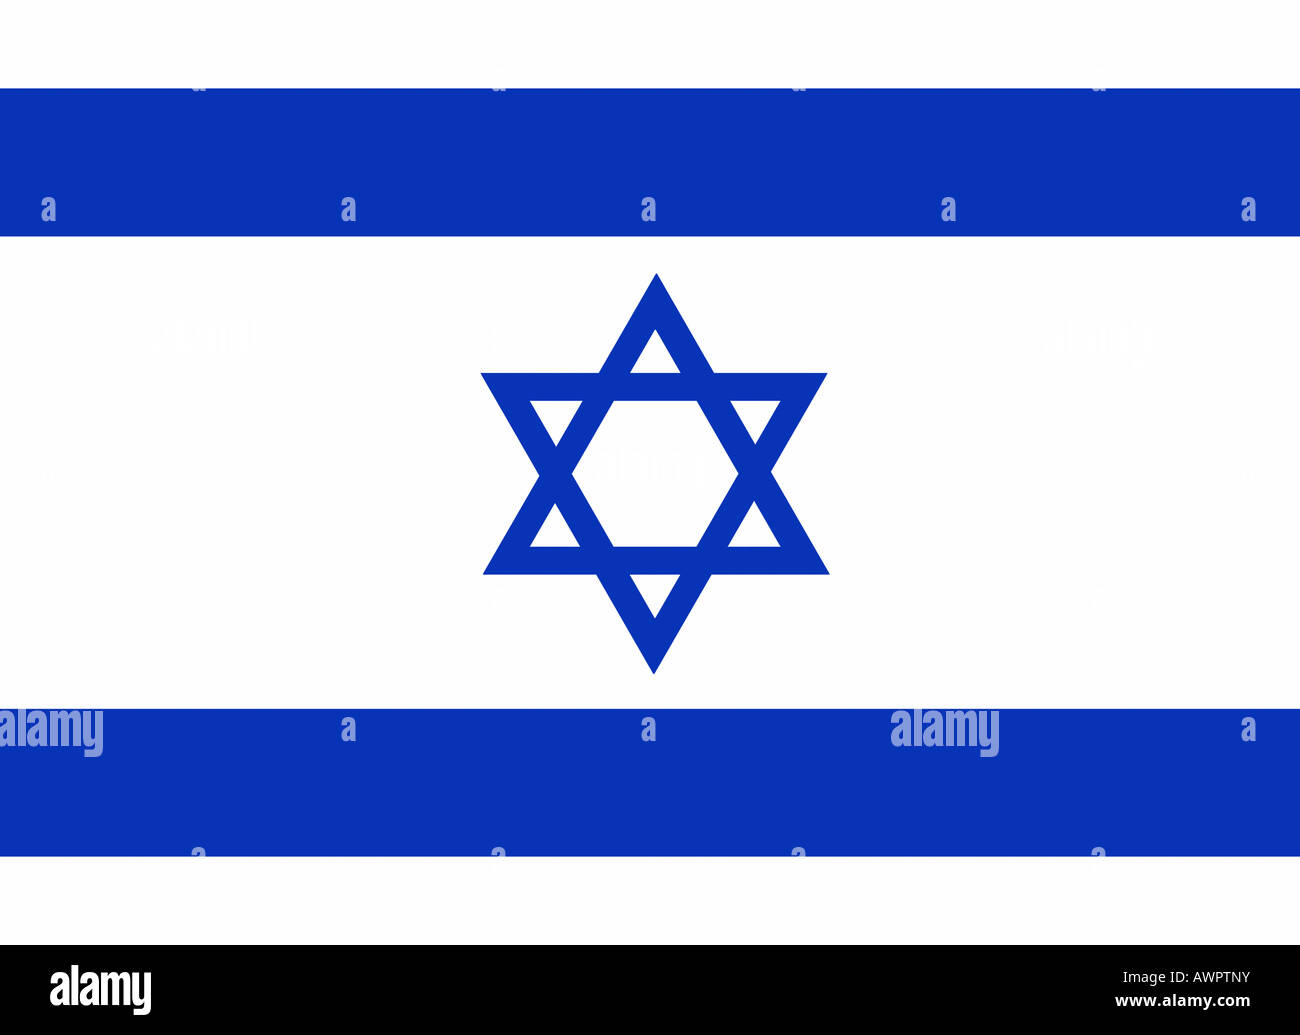 The flag of Israel - graphic Stock Photo